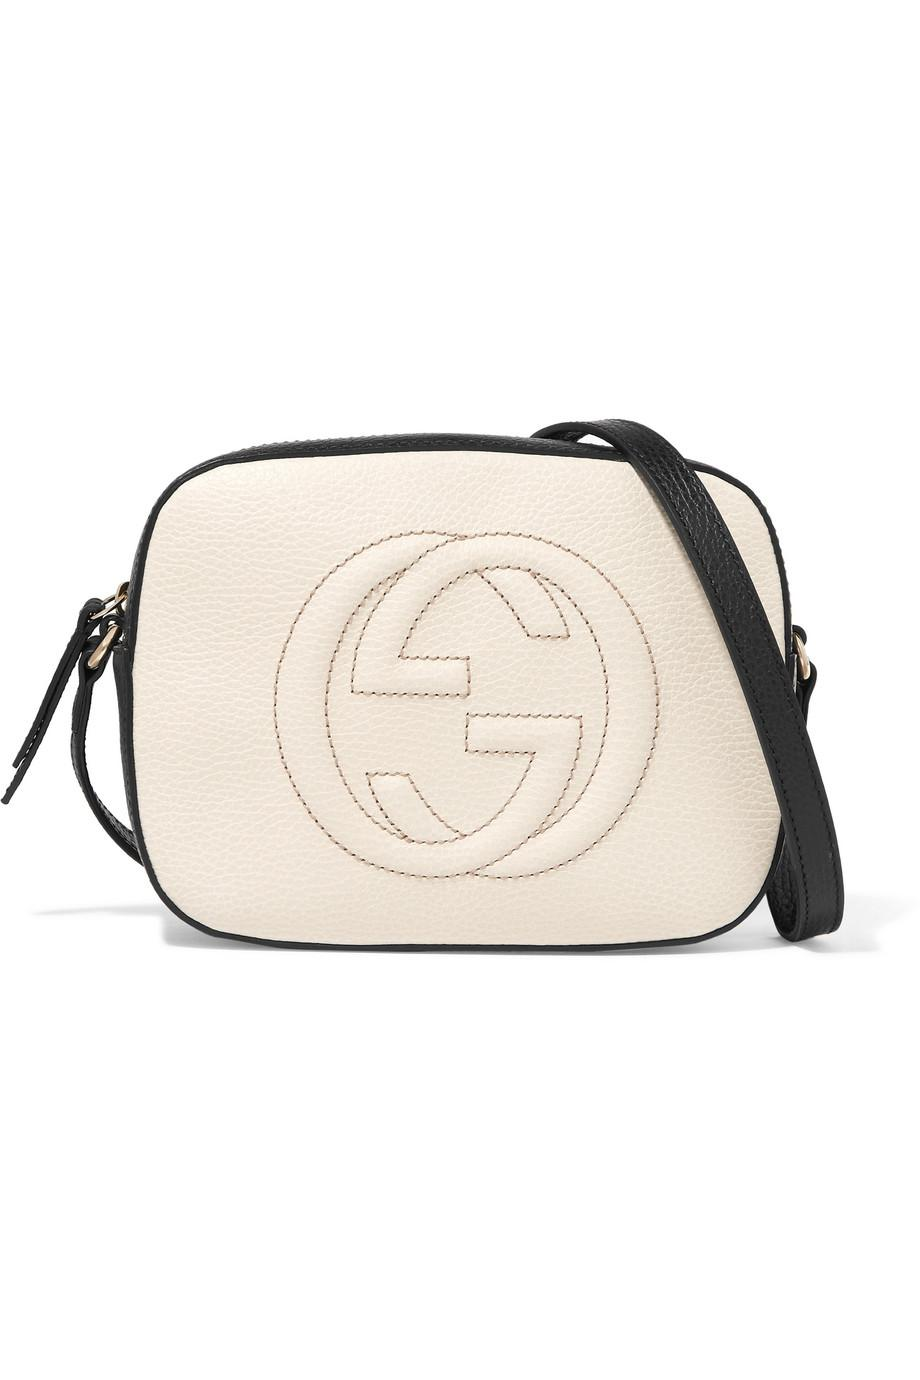 60c80dccb63 Lyst - Gucci Soho Disco Textured-leather Shoulder Bag in White